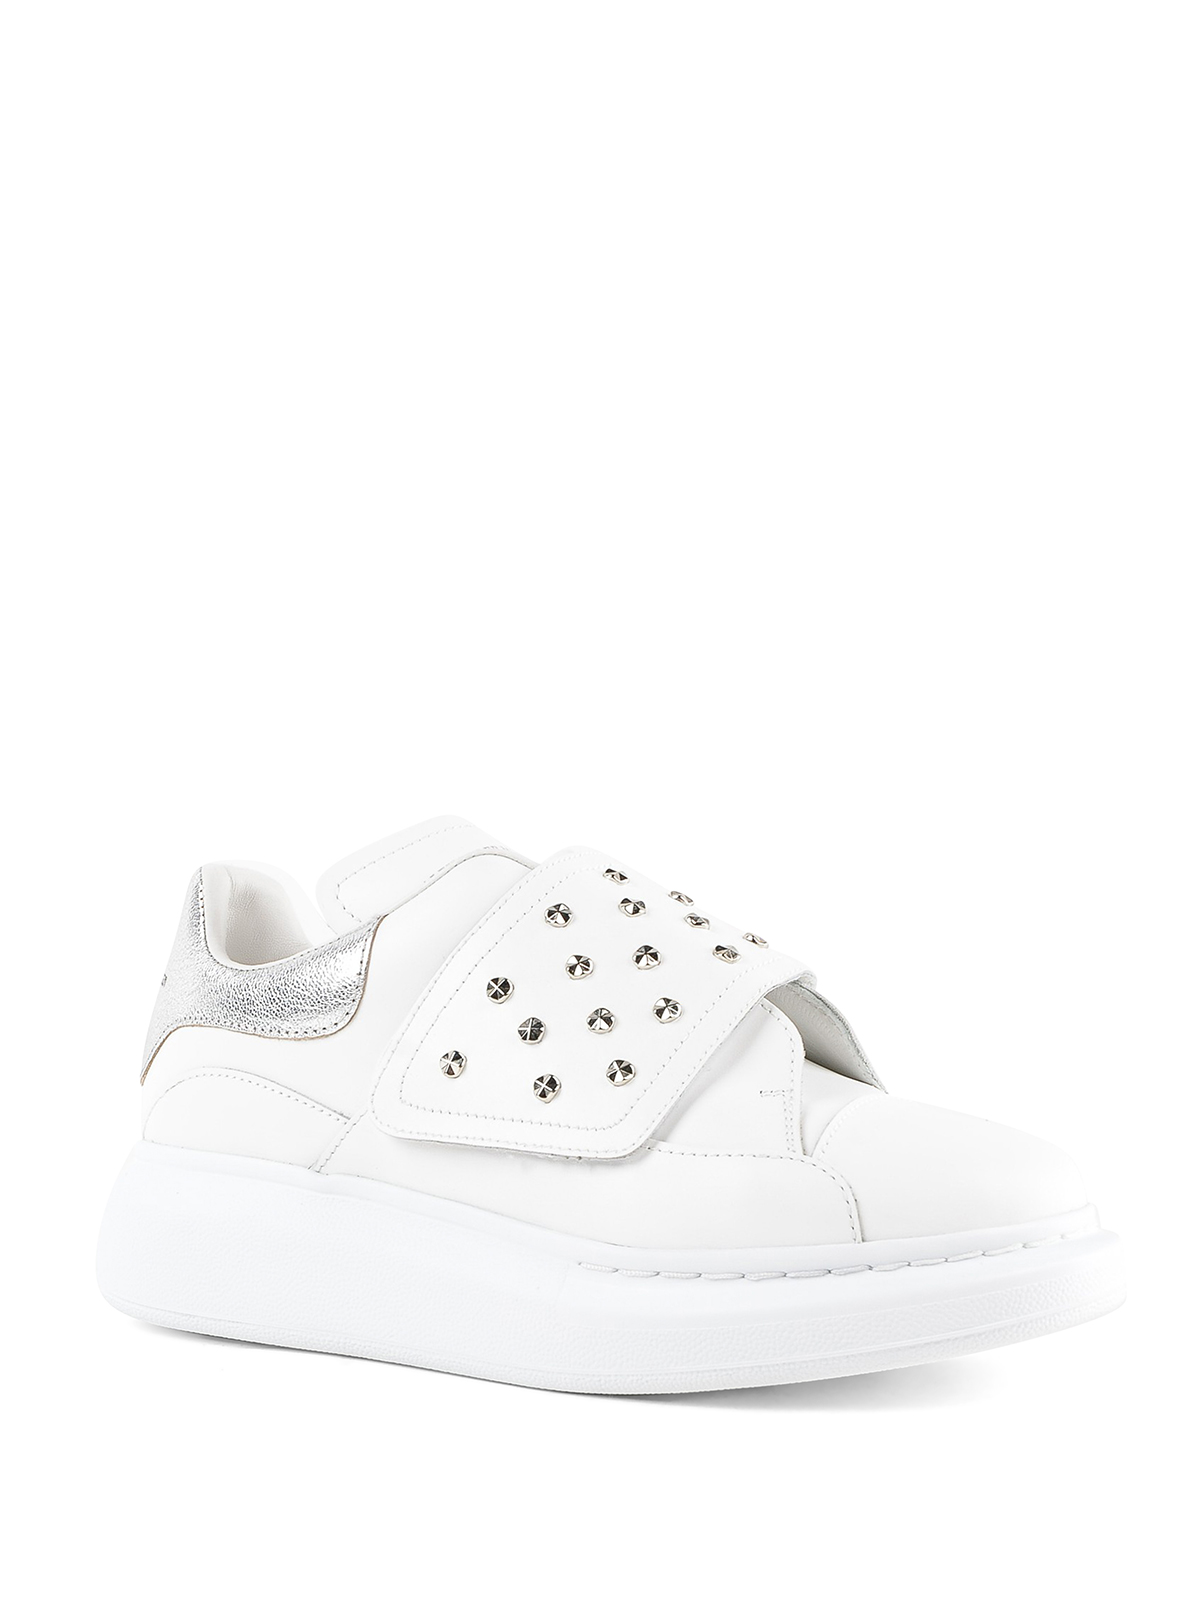 Oversize studded leather sneakers